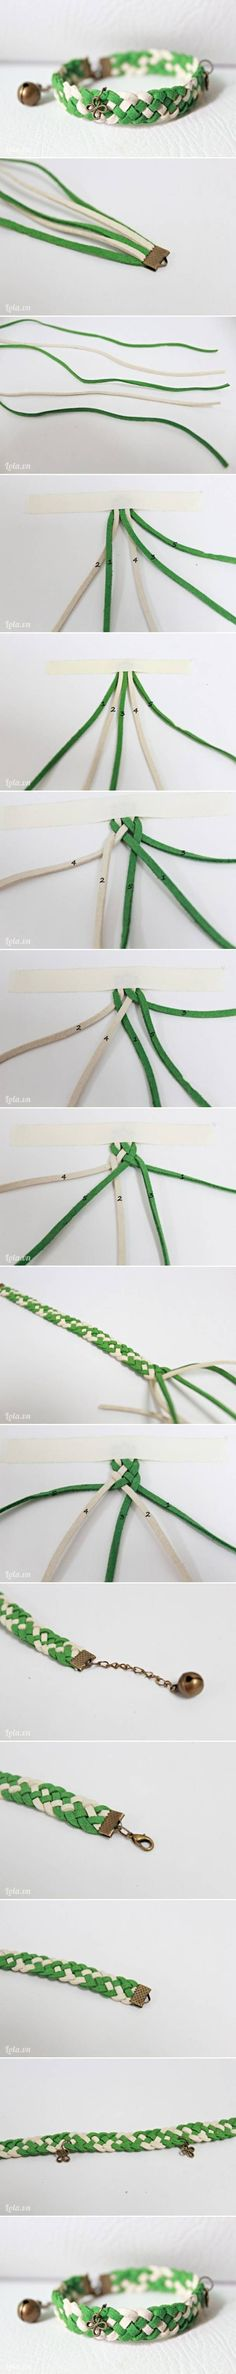 DIY bracelet | www.bykaro.nl for your jewelry making supplies